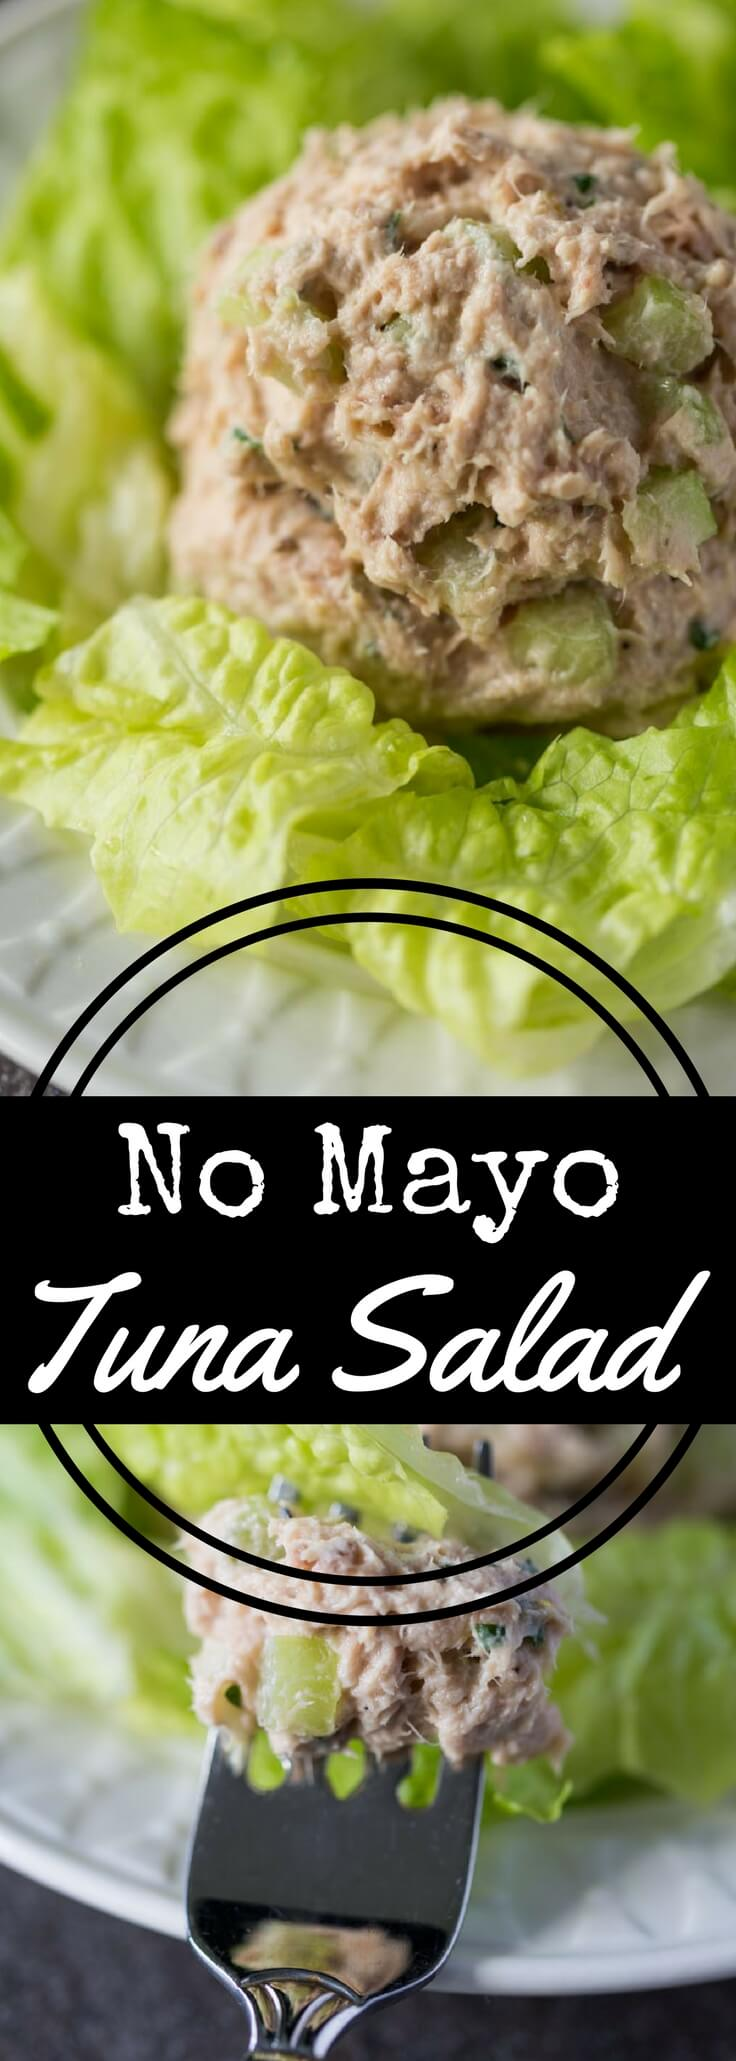 Yes, tuna salad without mayonnaise can be delicious! Try this No Mayo Tuna Salad recipe with fresh parsley, lemon zest, celery, and Greek yogurt. Fresh, light, flavorful, and perfectly suited for topping sandwiches or green salads.